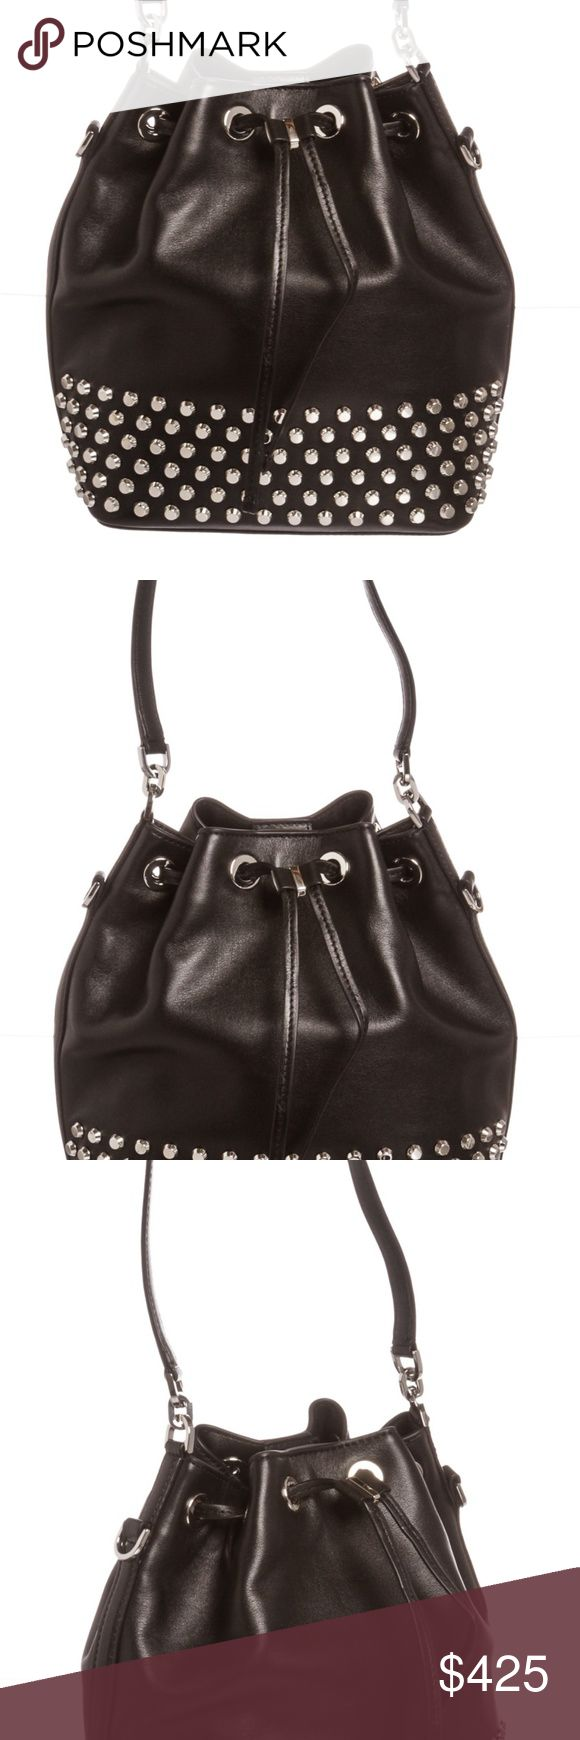 Michael Kors Black Leather Dottie Large Bucket Bag Black Michael Kors leather studded Dottie large bucket bag with tonal fabric lining, three interior pockets one with a zipper closure, removable crossbody strap and interior key clip.  Drawstring and snap closure.   6178MSC Michael Kors Bags Shoulder Bags